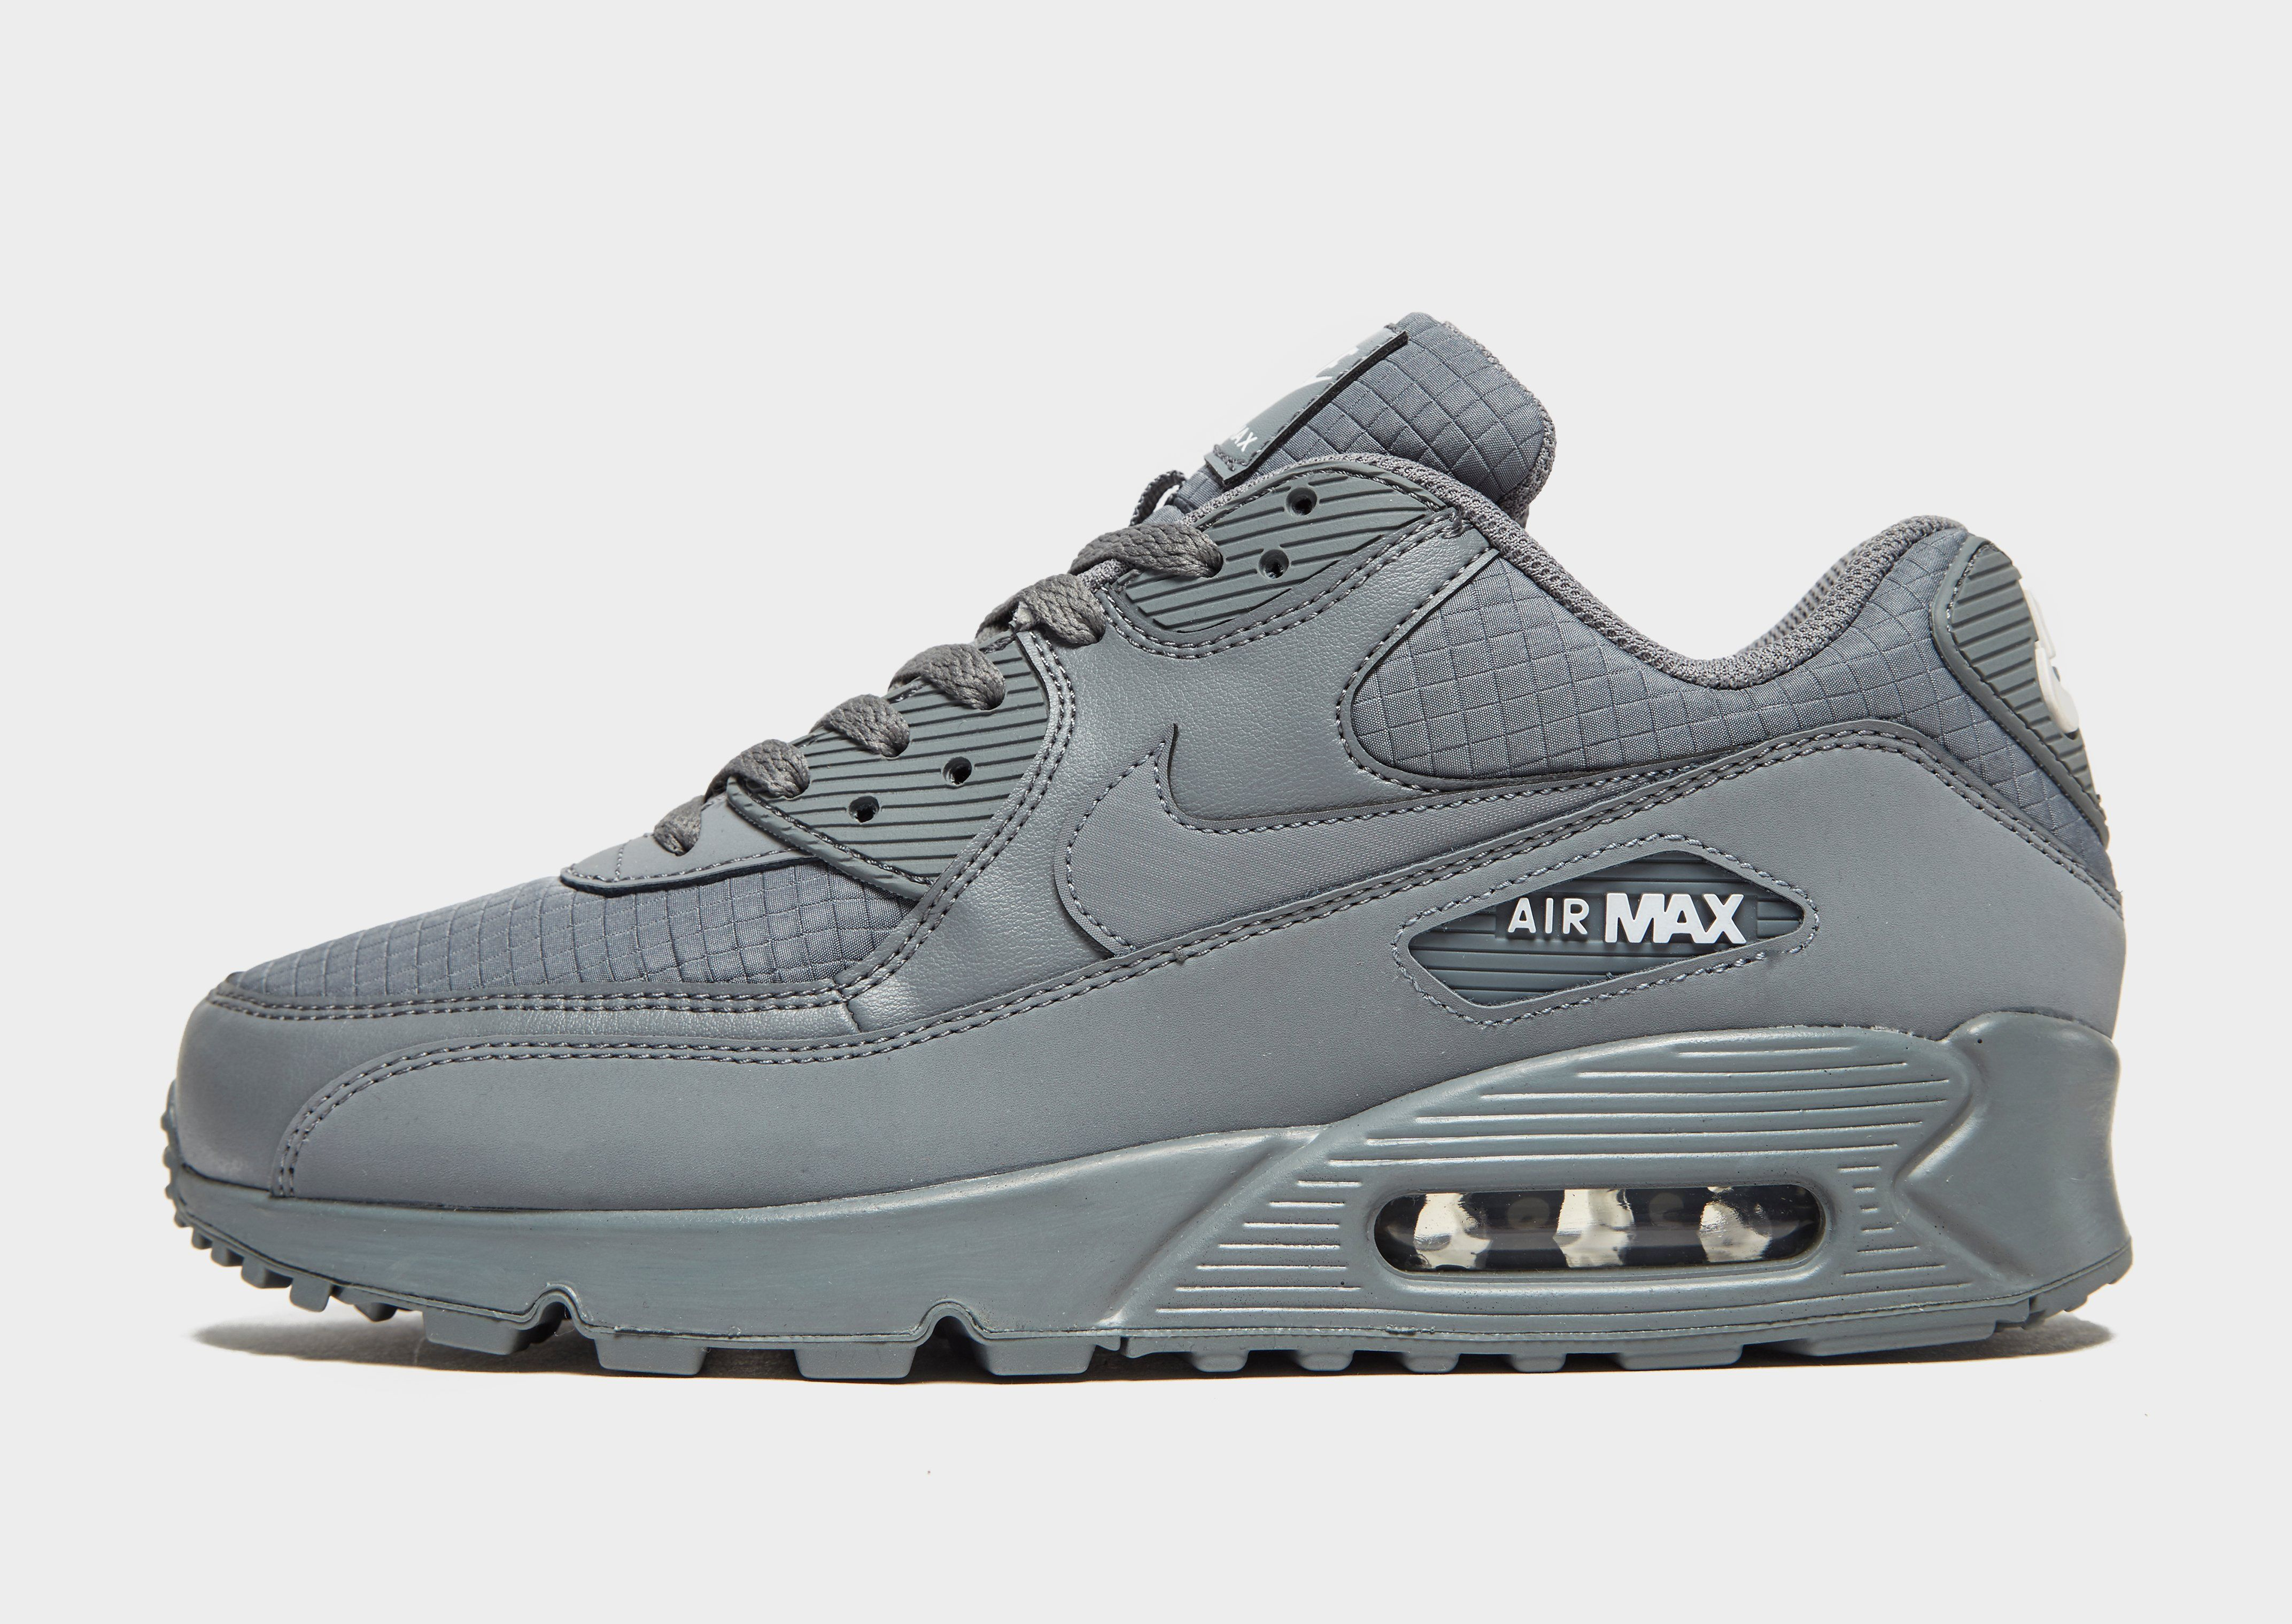 reputable site cde4d e9f74 Nike Air Max 90 Essential